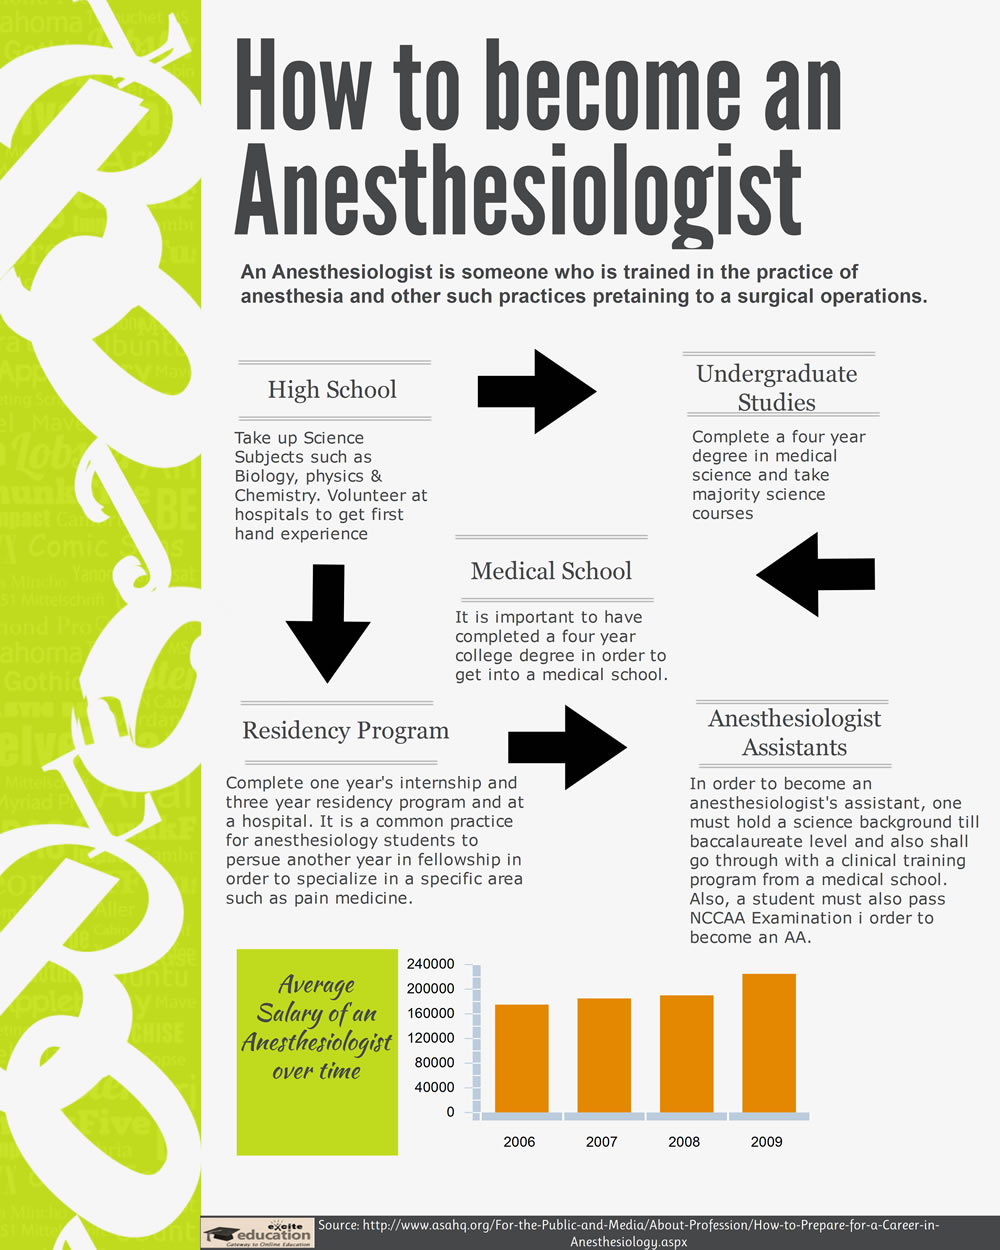 Are You Interested in Becoming An Anesthesiologist